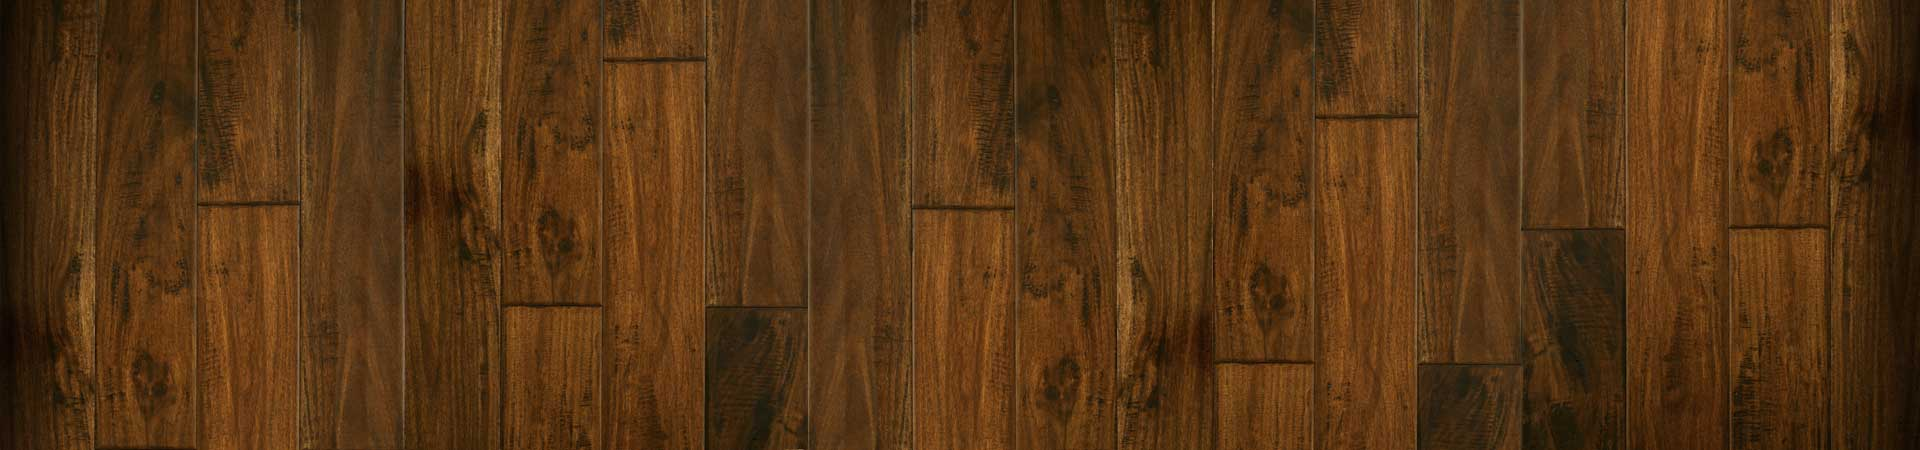 Belmonts flooring quality service you can stand on Belmont carpets and wood flooring